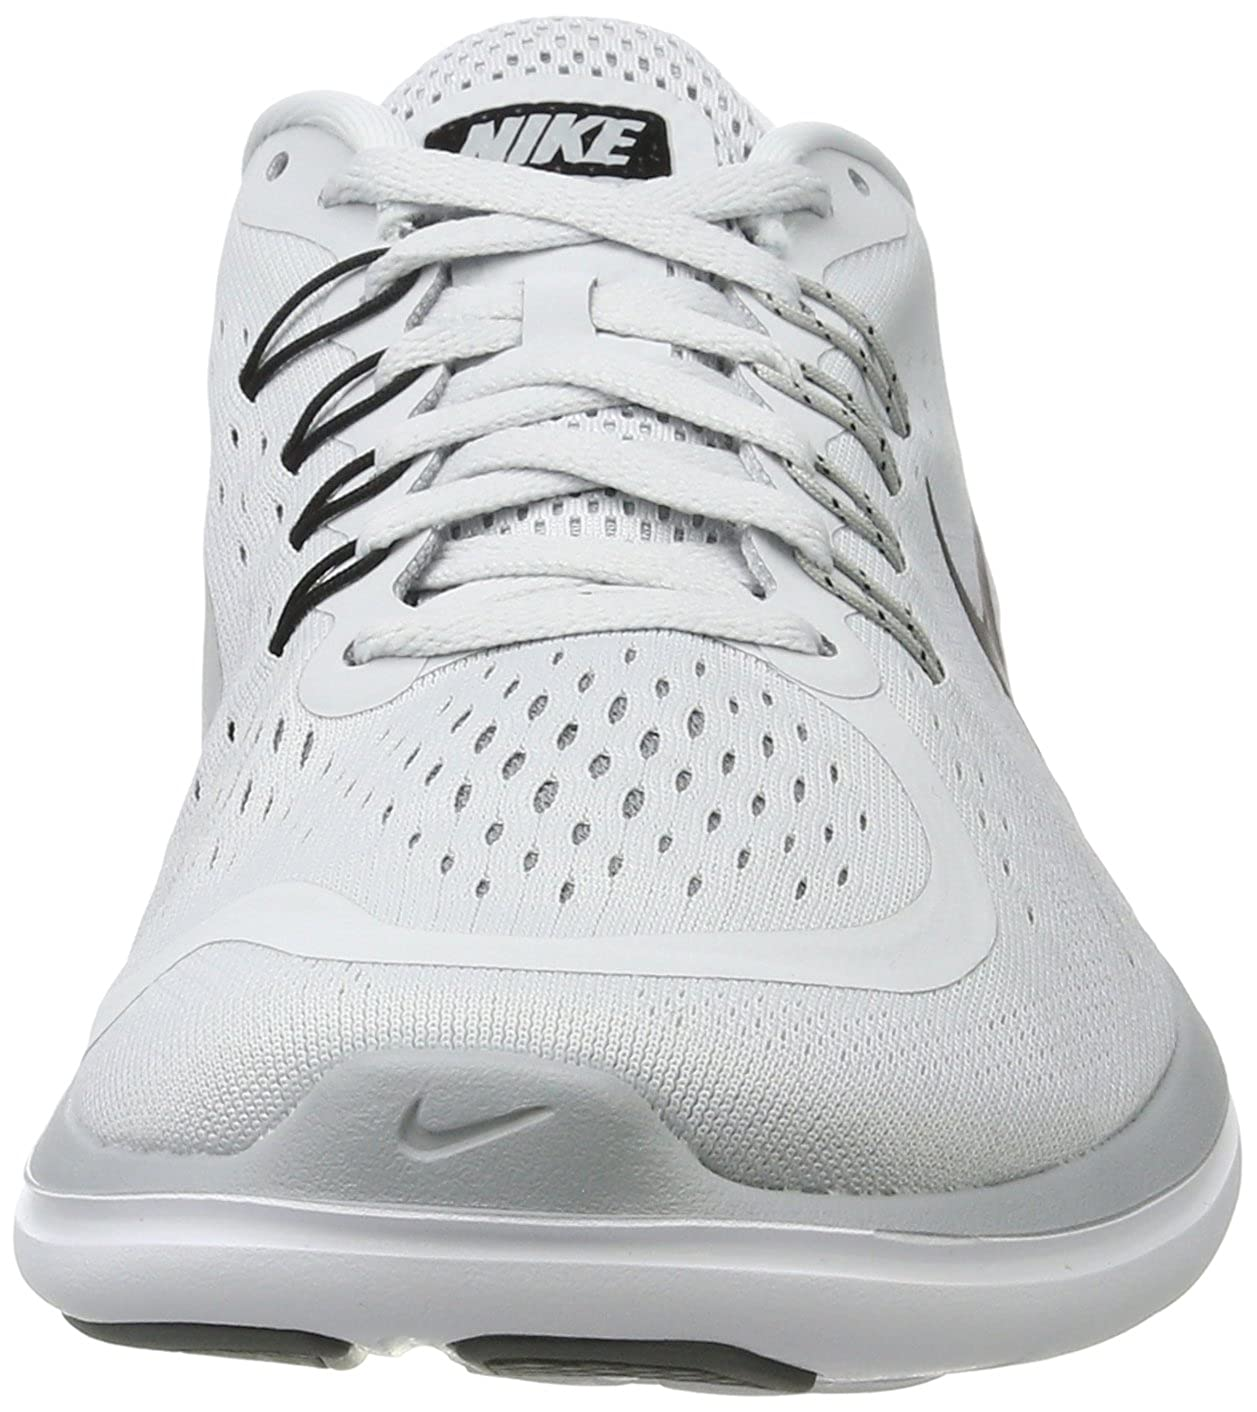 f0f155178ac4c Nike Men s Free Rn Sense Running Shoe Fitness  Amazon.co.uk  Shoes   Bags